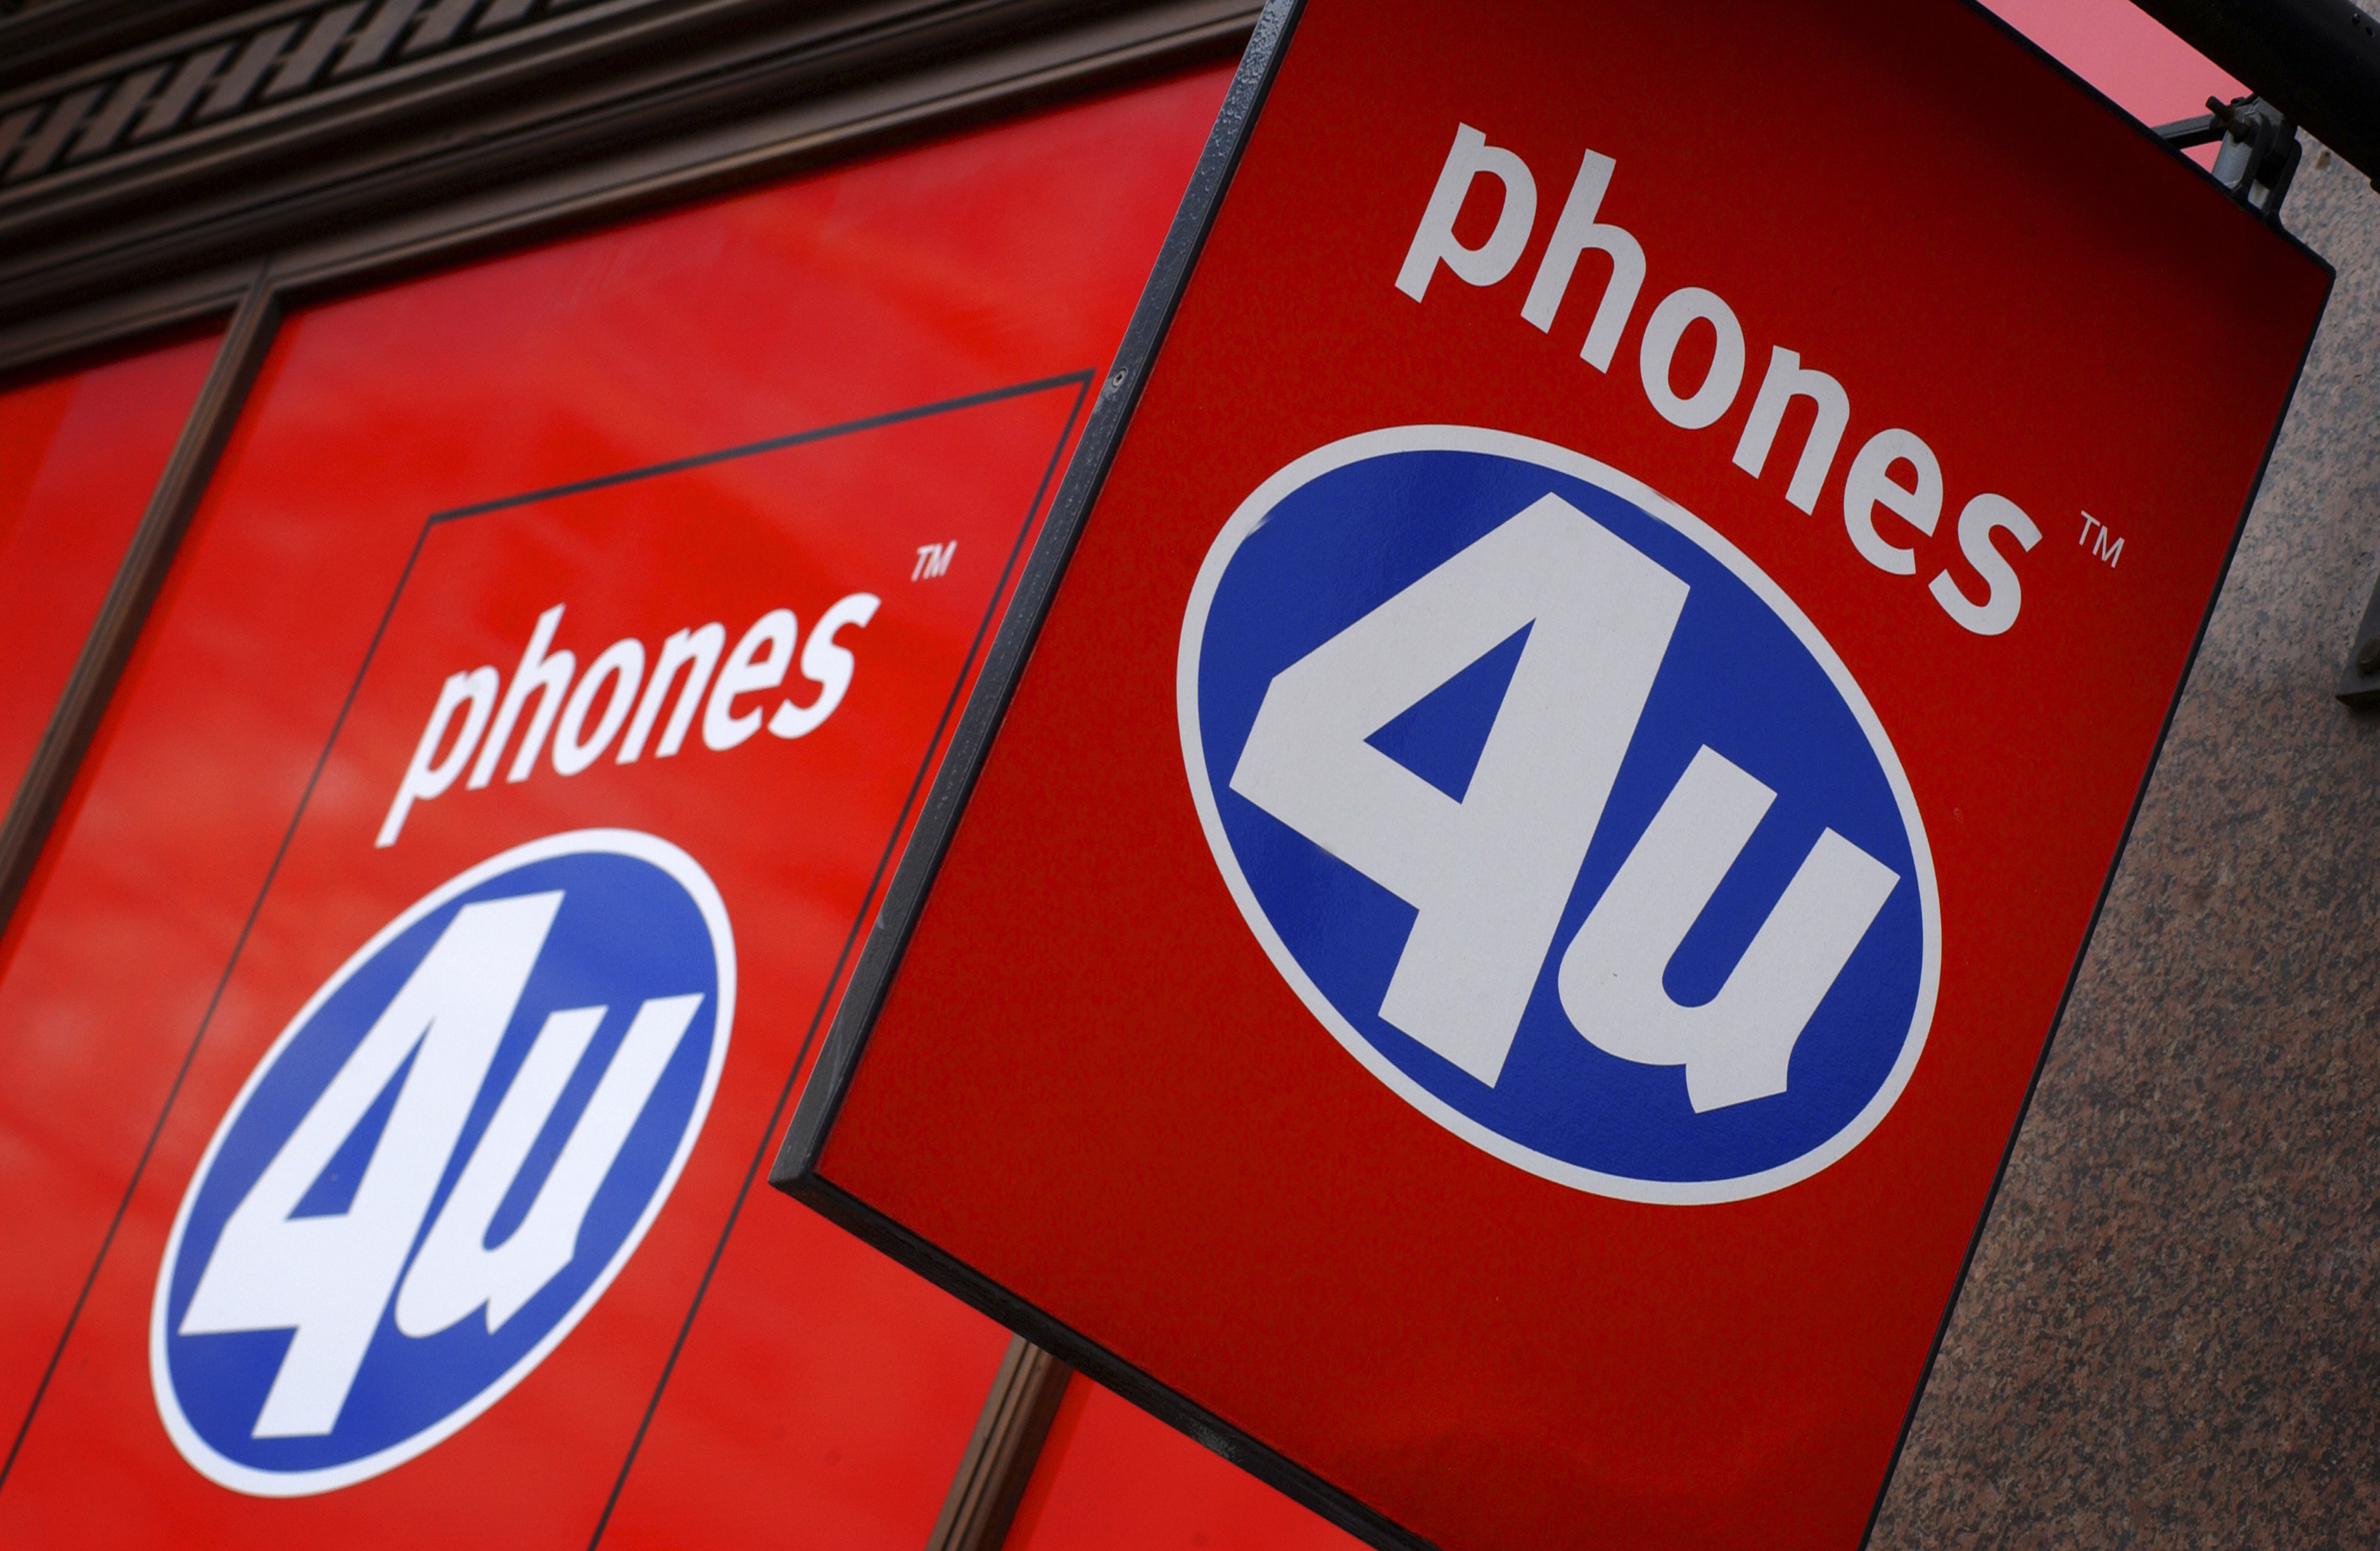 Exterior of a Phones4U store. (Newscast/Universal Images Group via Getty Images)